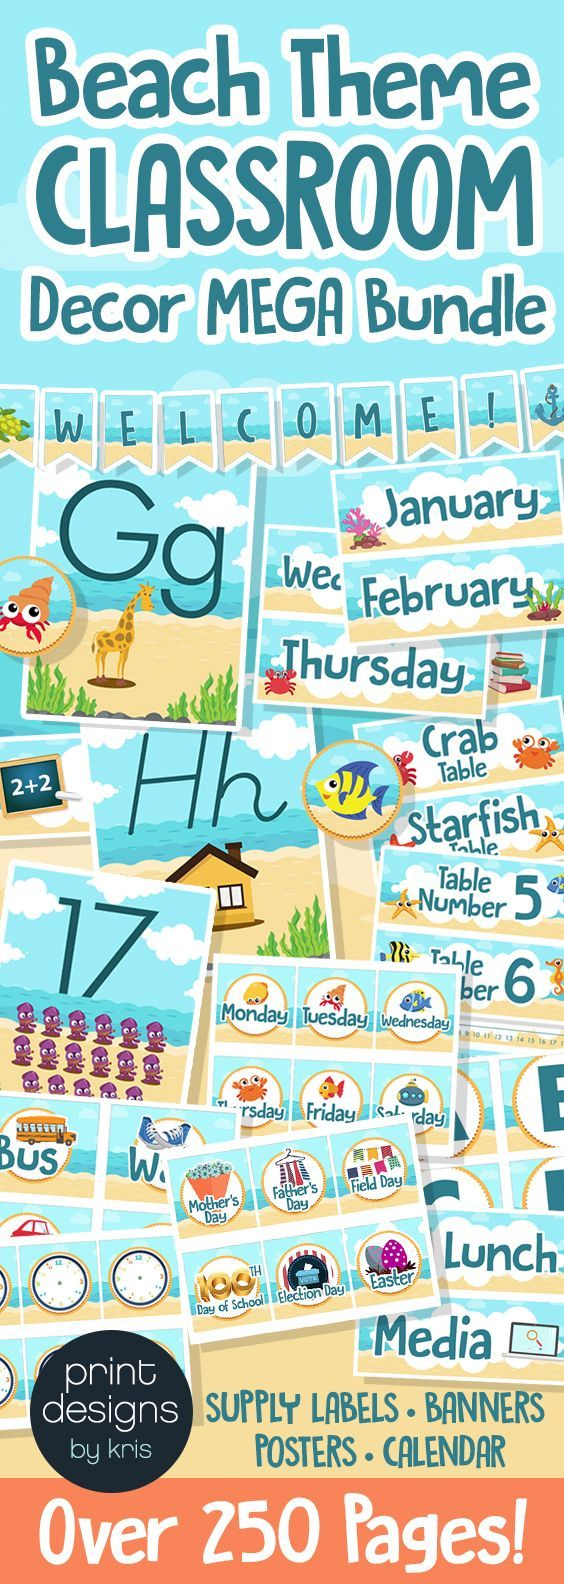 This is the mega bundle of elementary school classroom decor in a Beach Theme! Over 250 PAGES of decor options including calendar, alphabet posters, name plates, supply labels, banners and more!